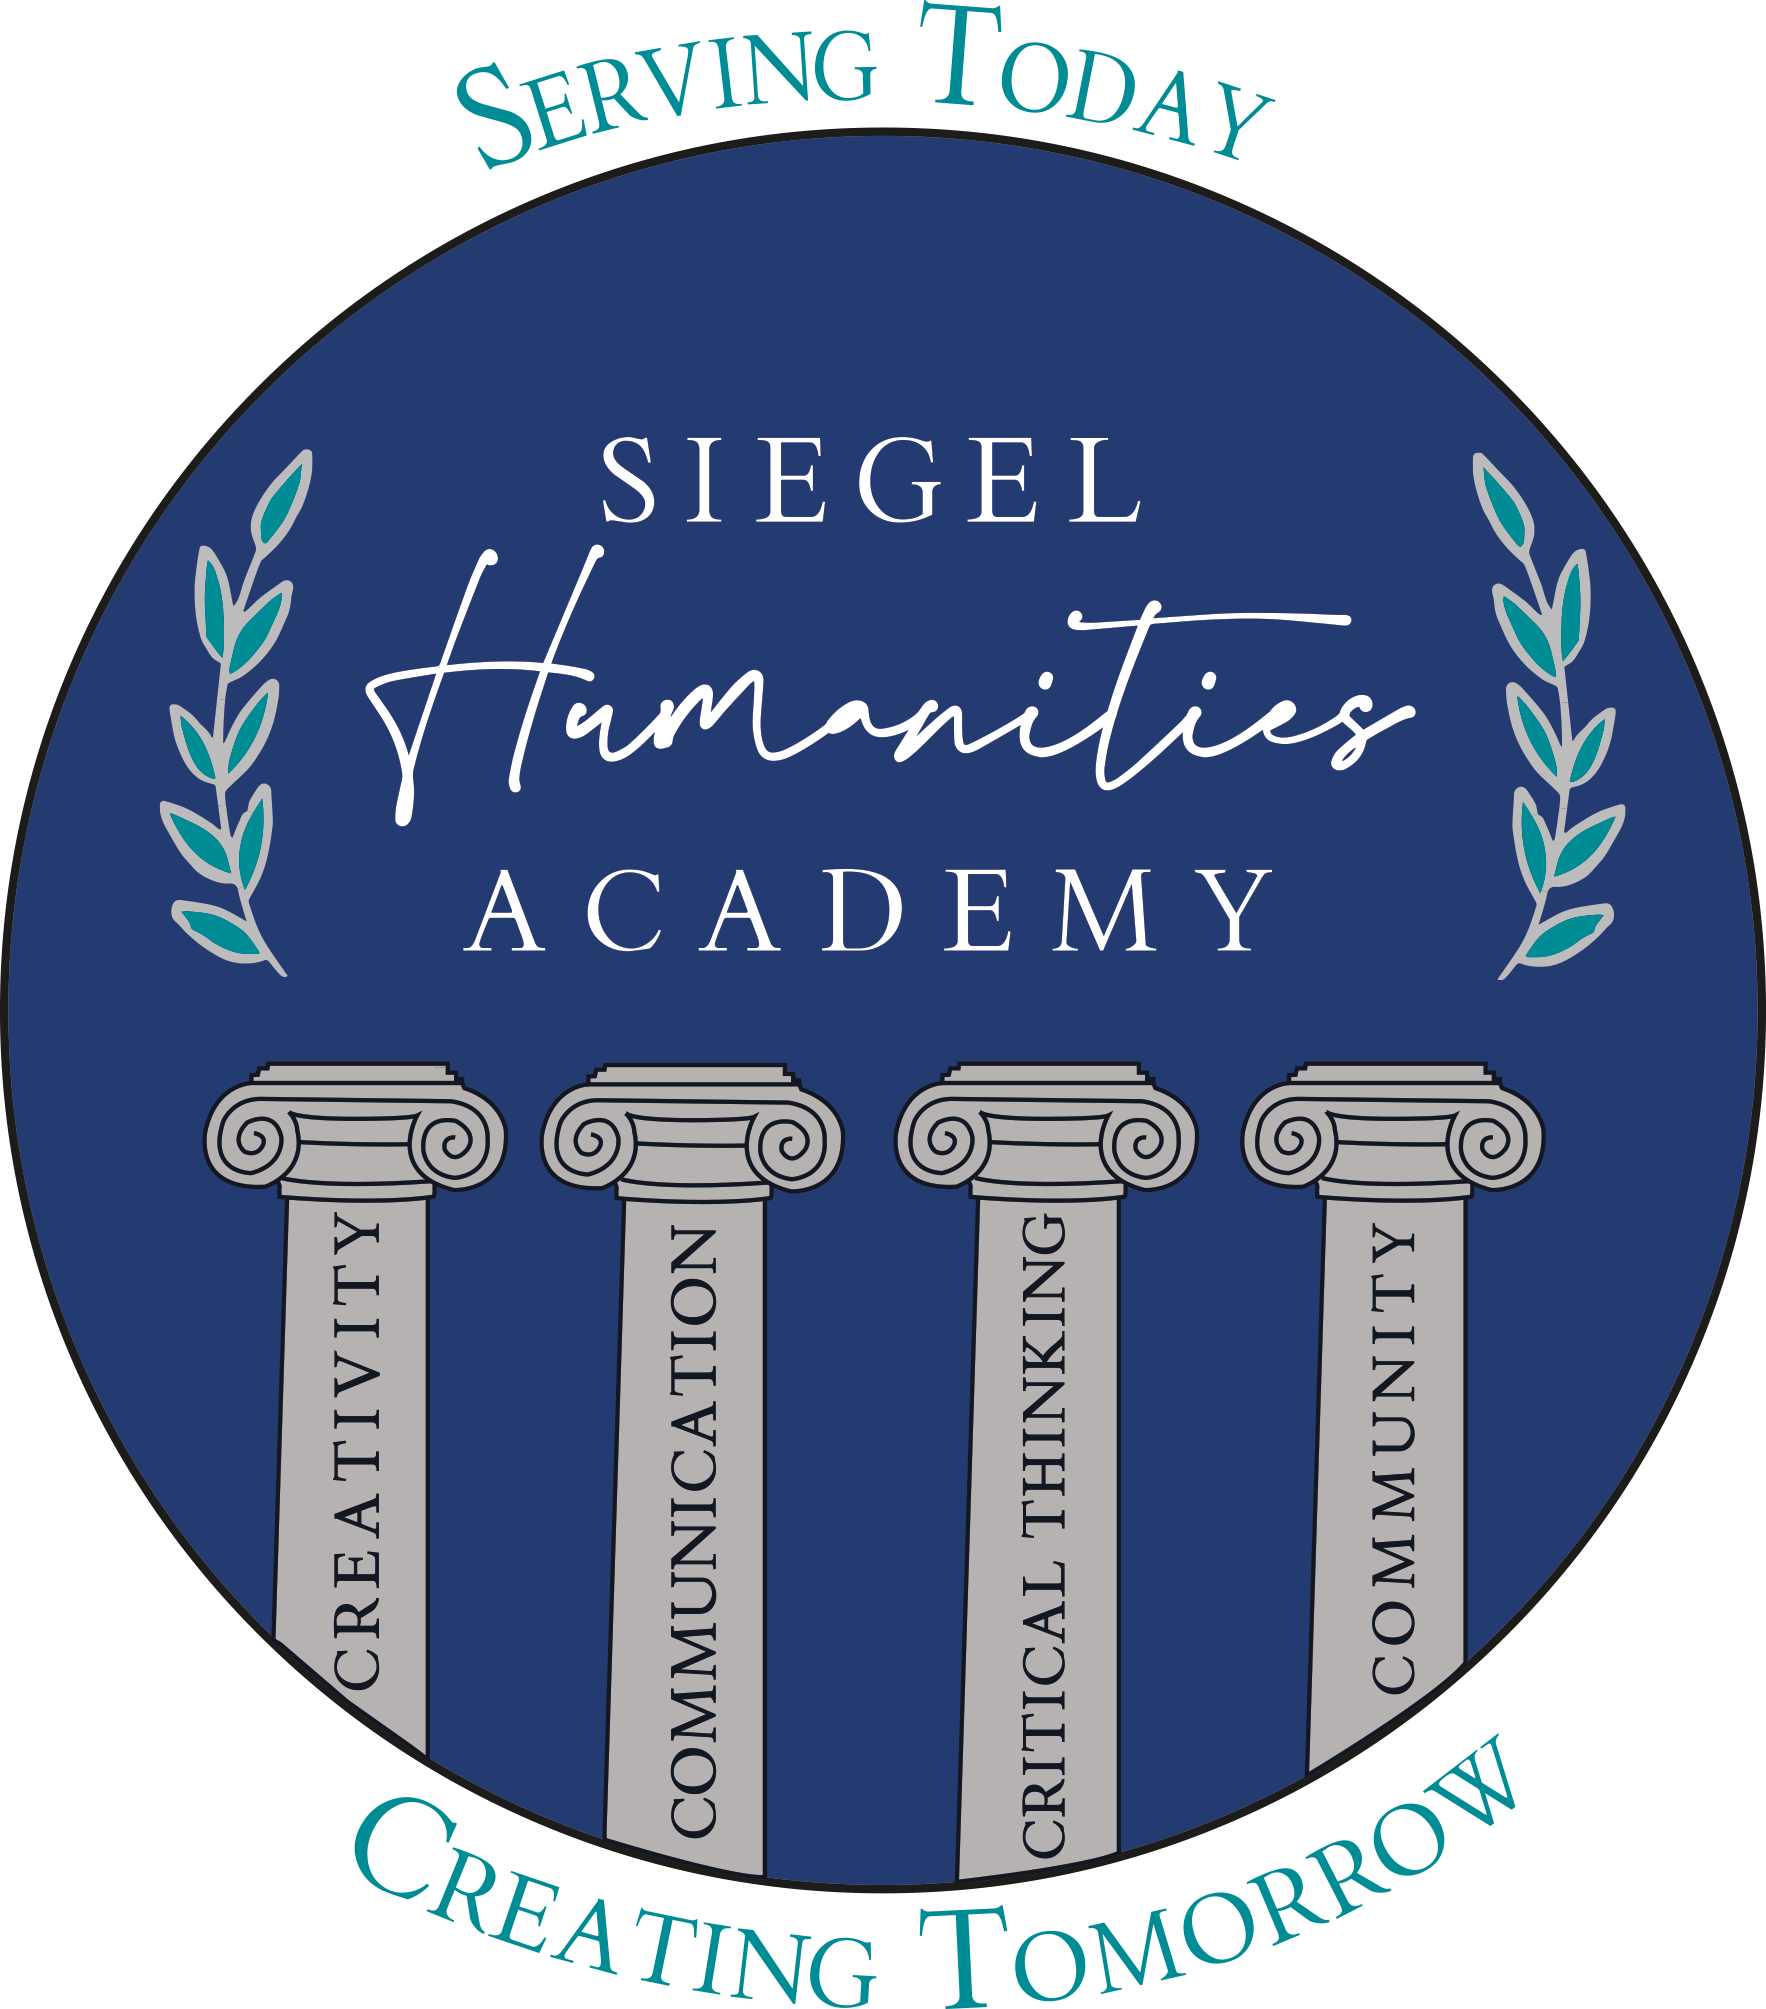 Siegel Humanities Academy logo